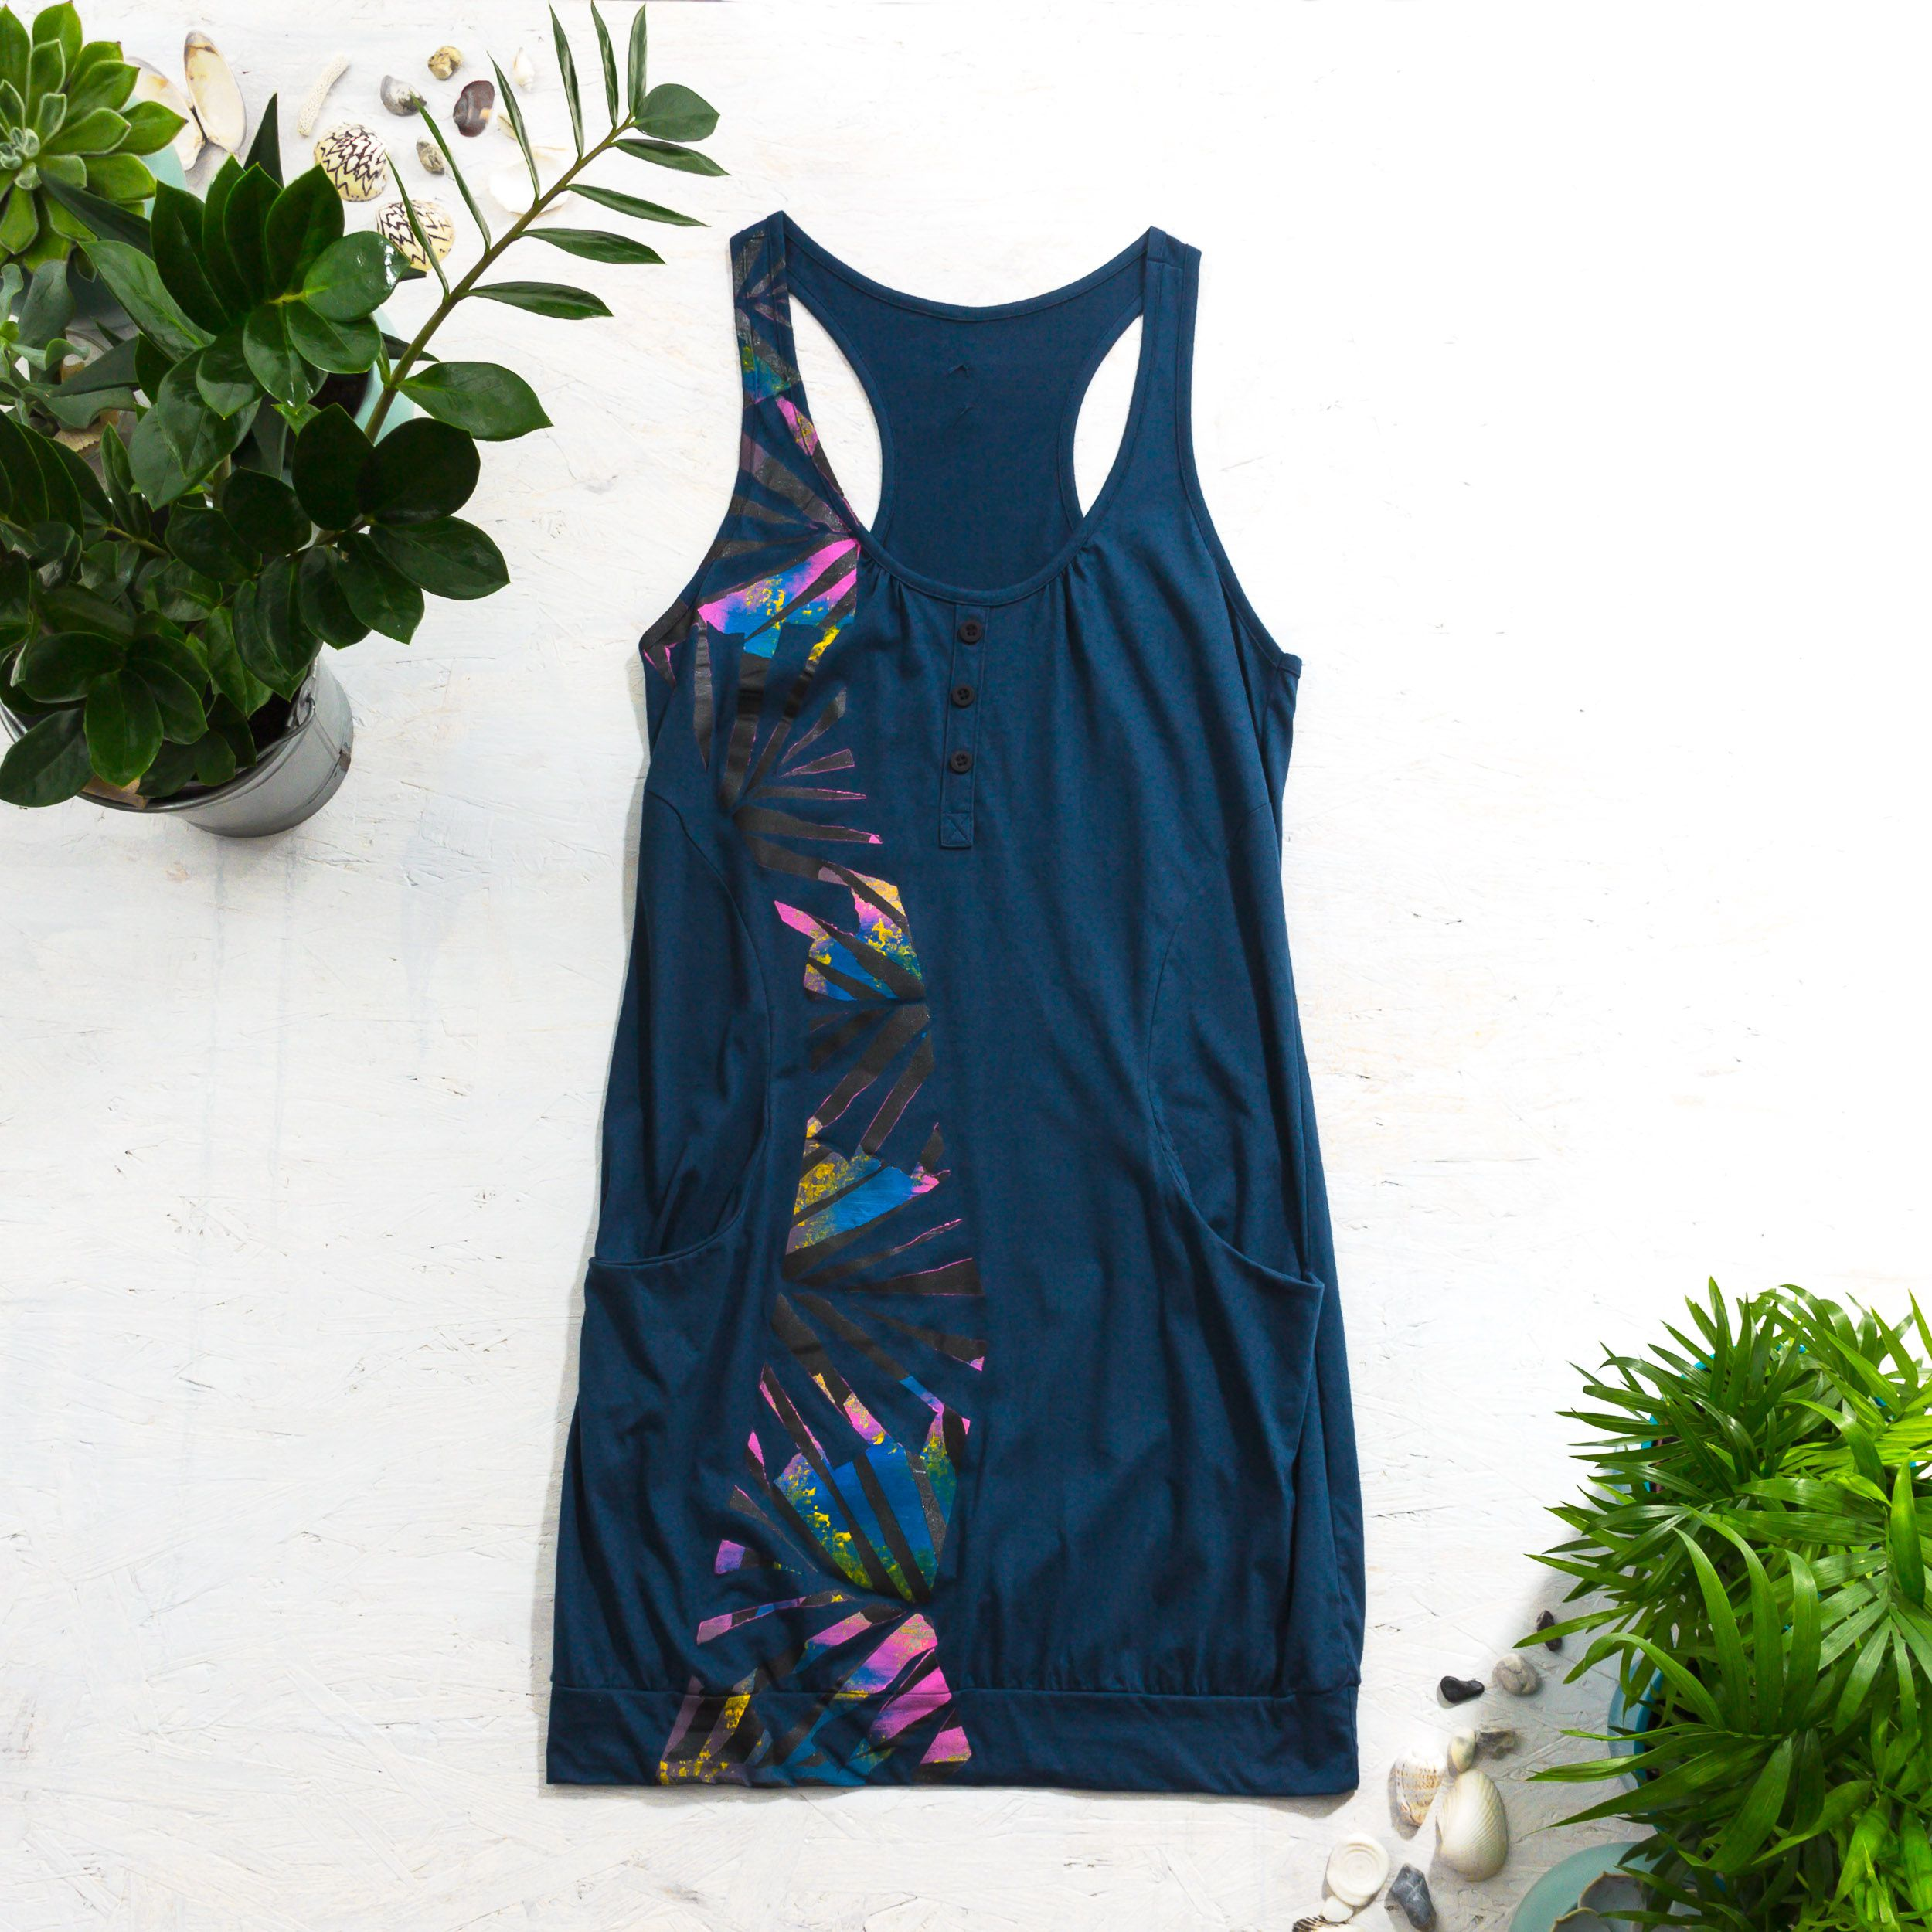 painted paint racer jungle abstract apparel one kind clothes shipping inspiration love unique cotton back dress fashion hand buttons pink festival with spirit free blue